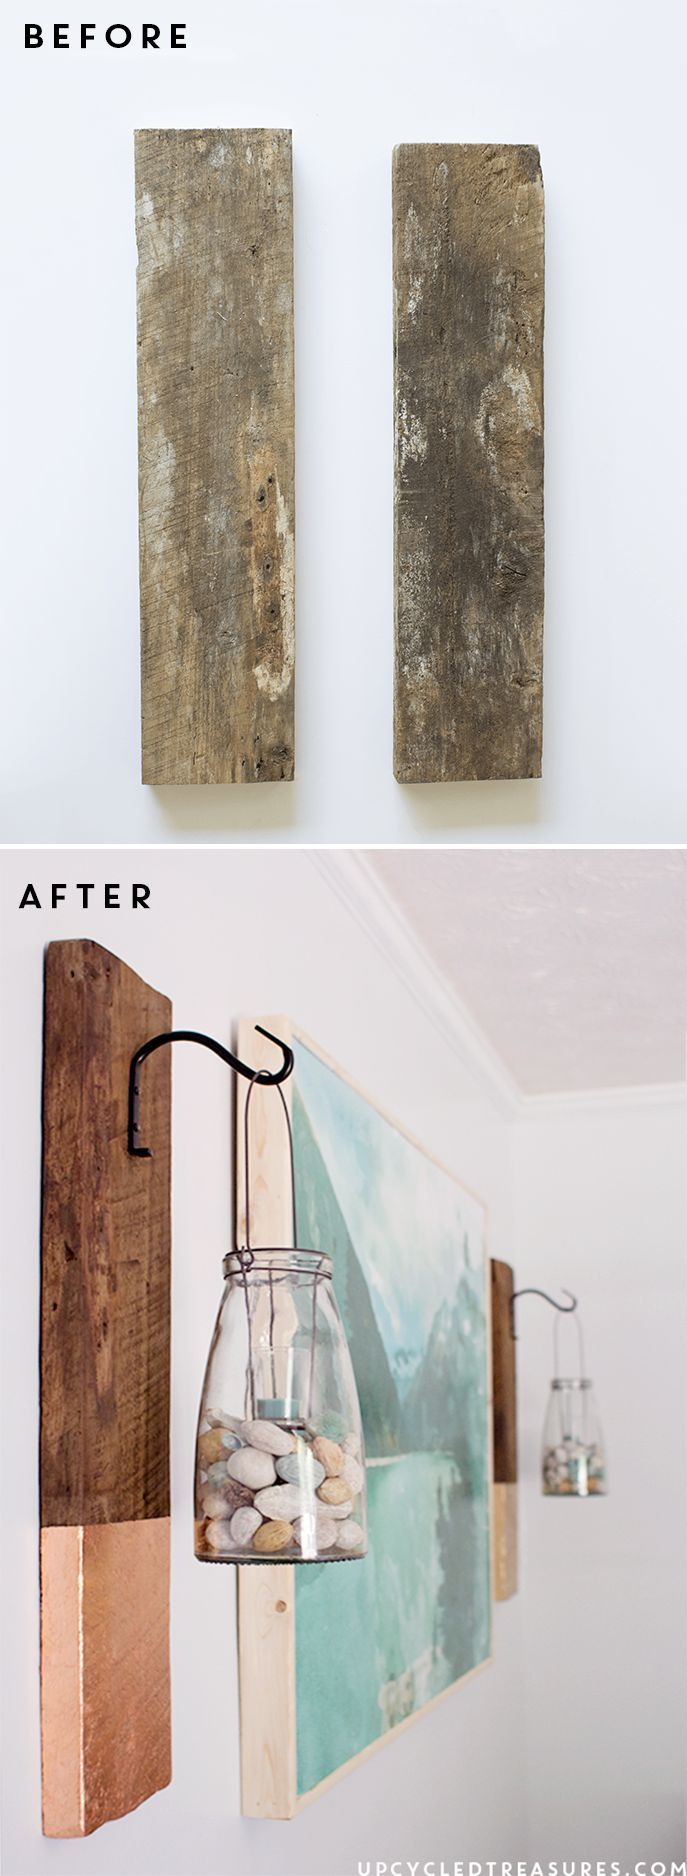 DIY Modern Rustic Wall Hanging from salvaged wood | upcycledtreasures.com